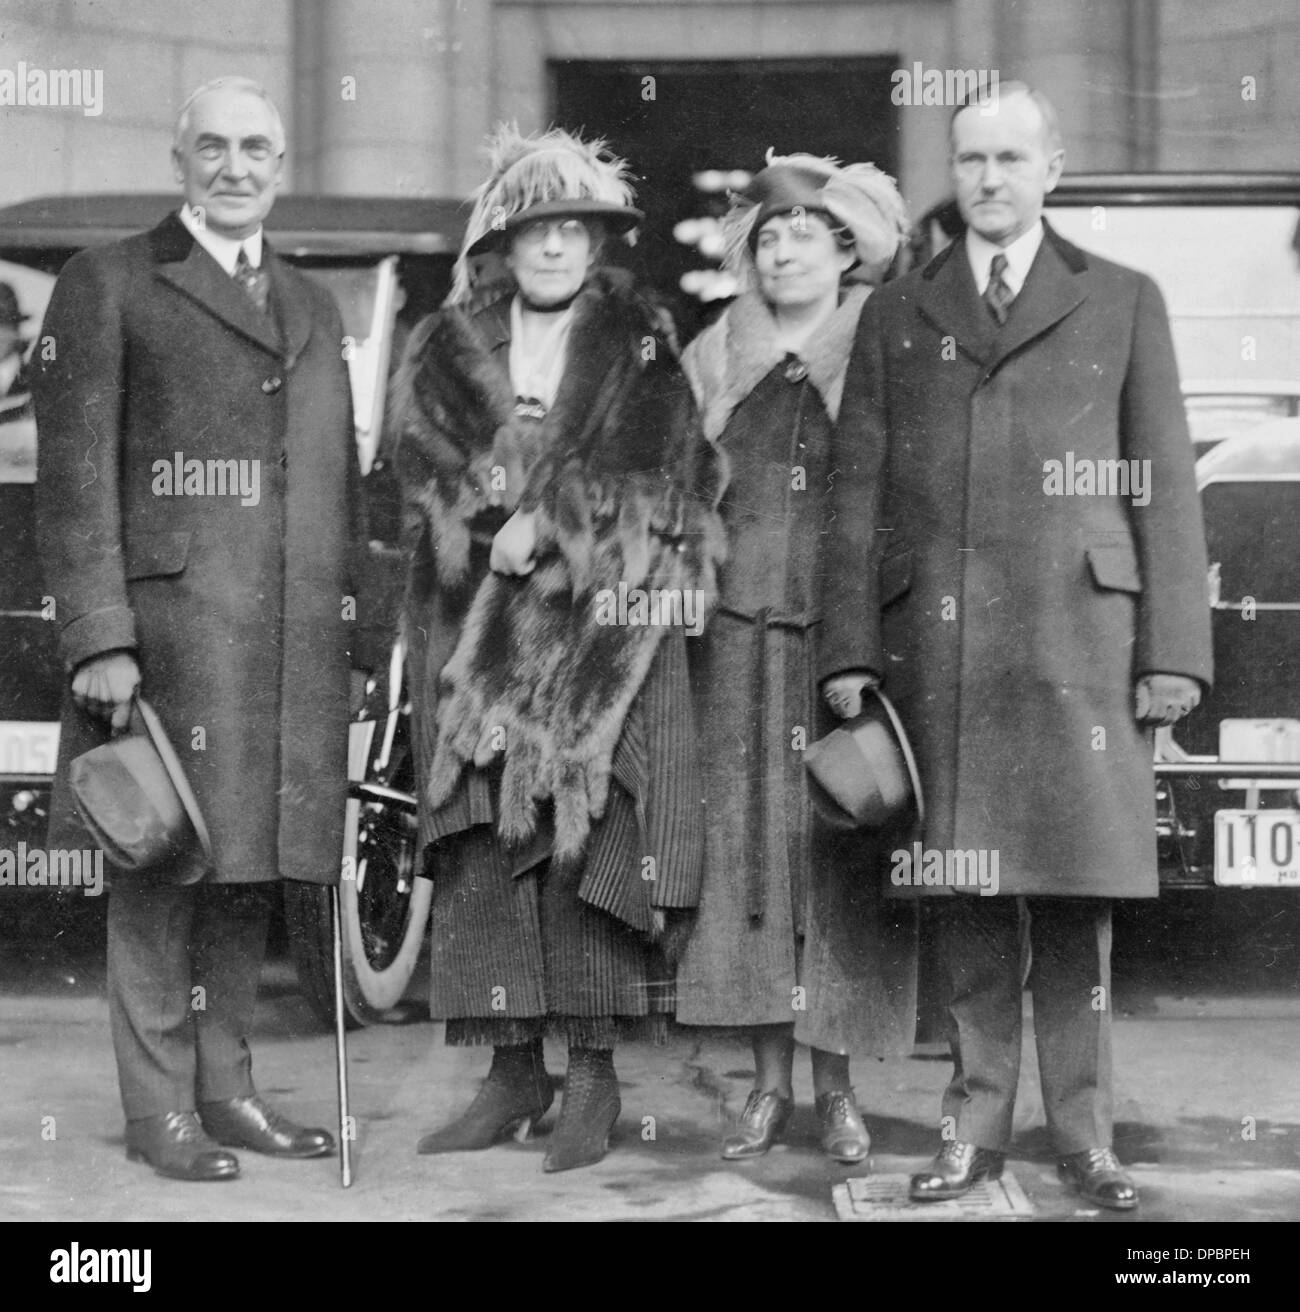 President Warren G Harding and his wife with then Vice President Calvin Coolidge and his wife, 1921 - Stock Image